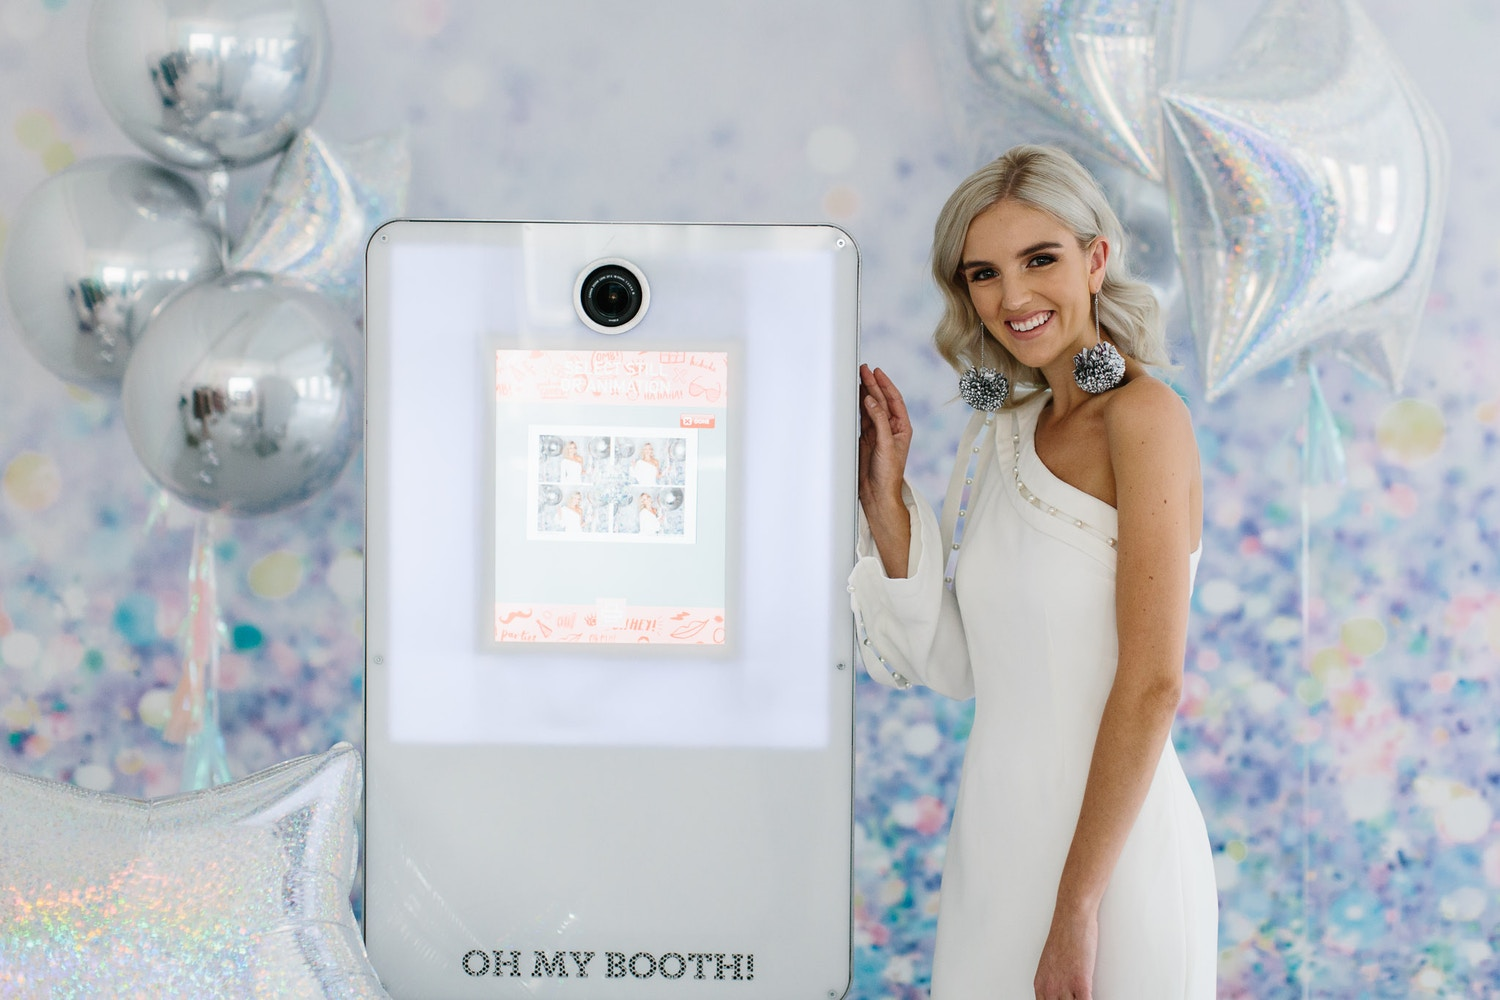 PARTY WITH OH MY BOOTH